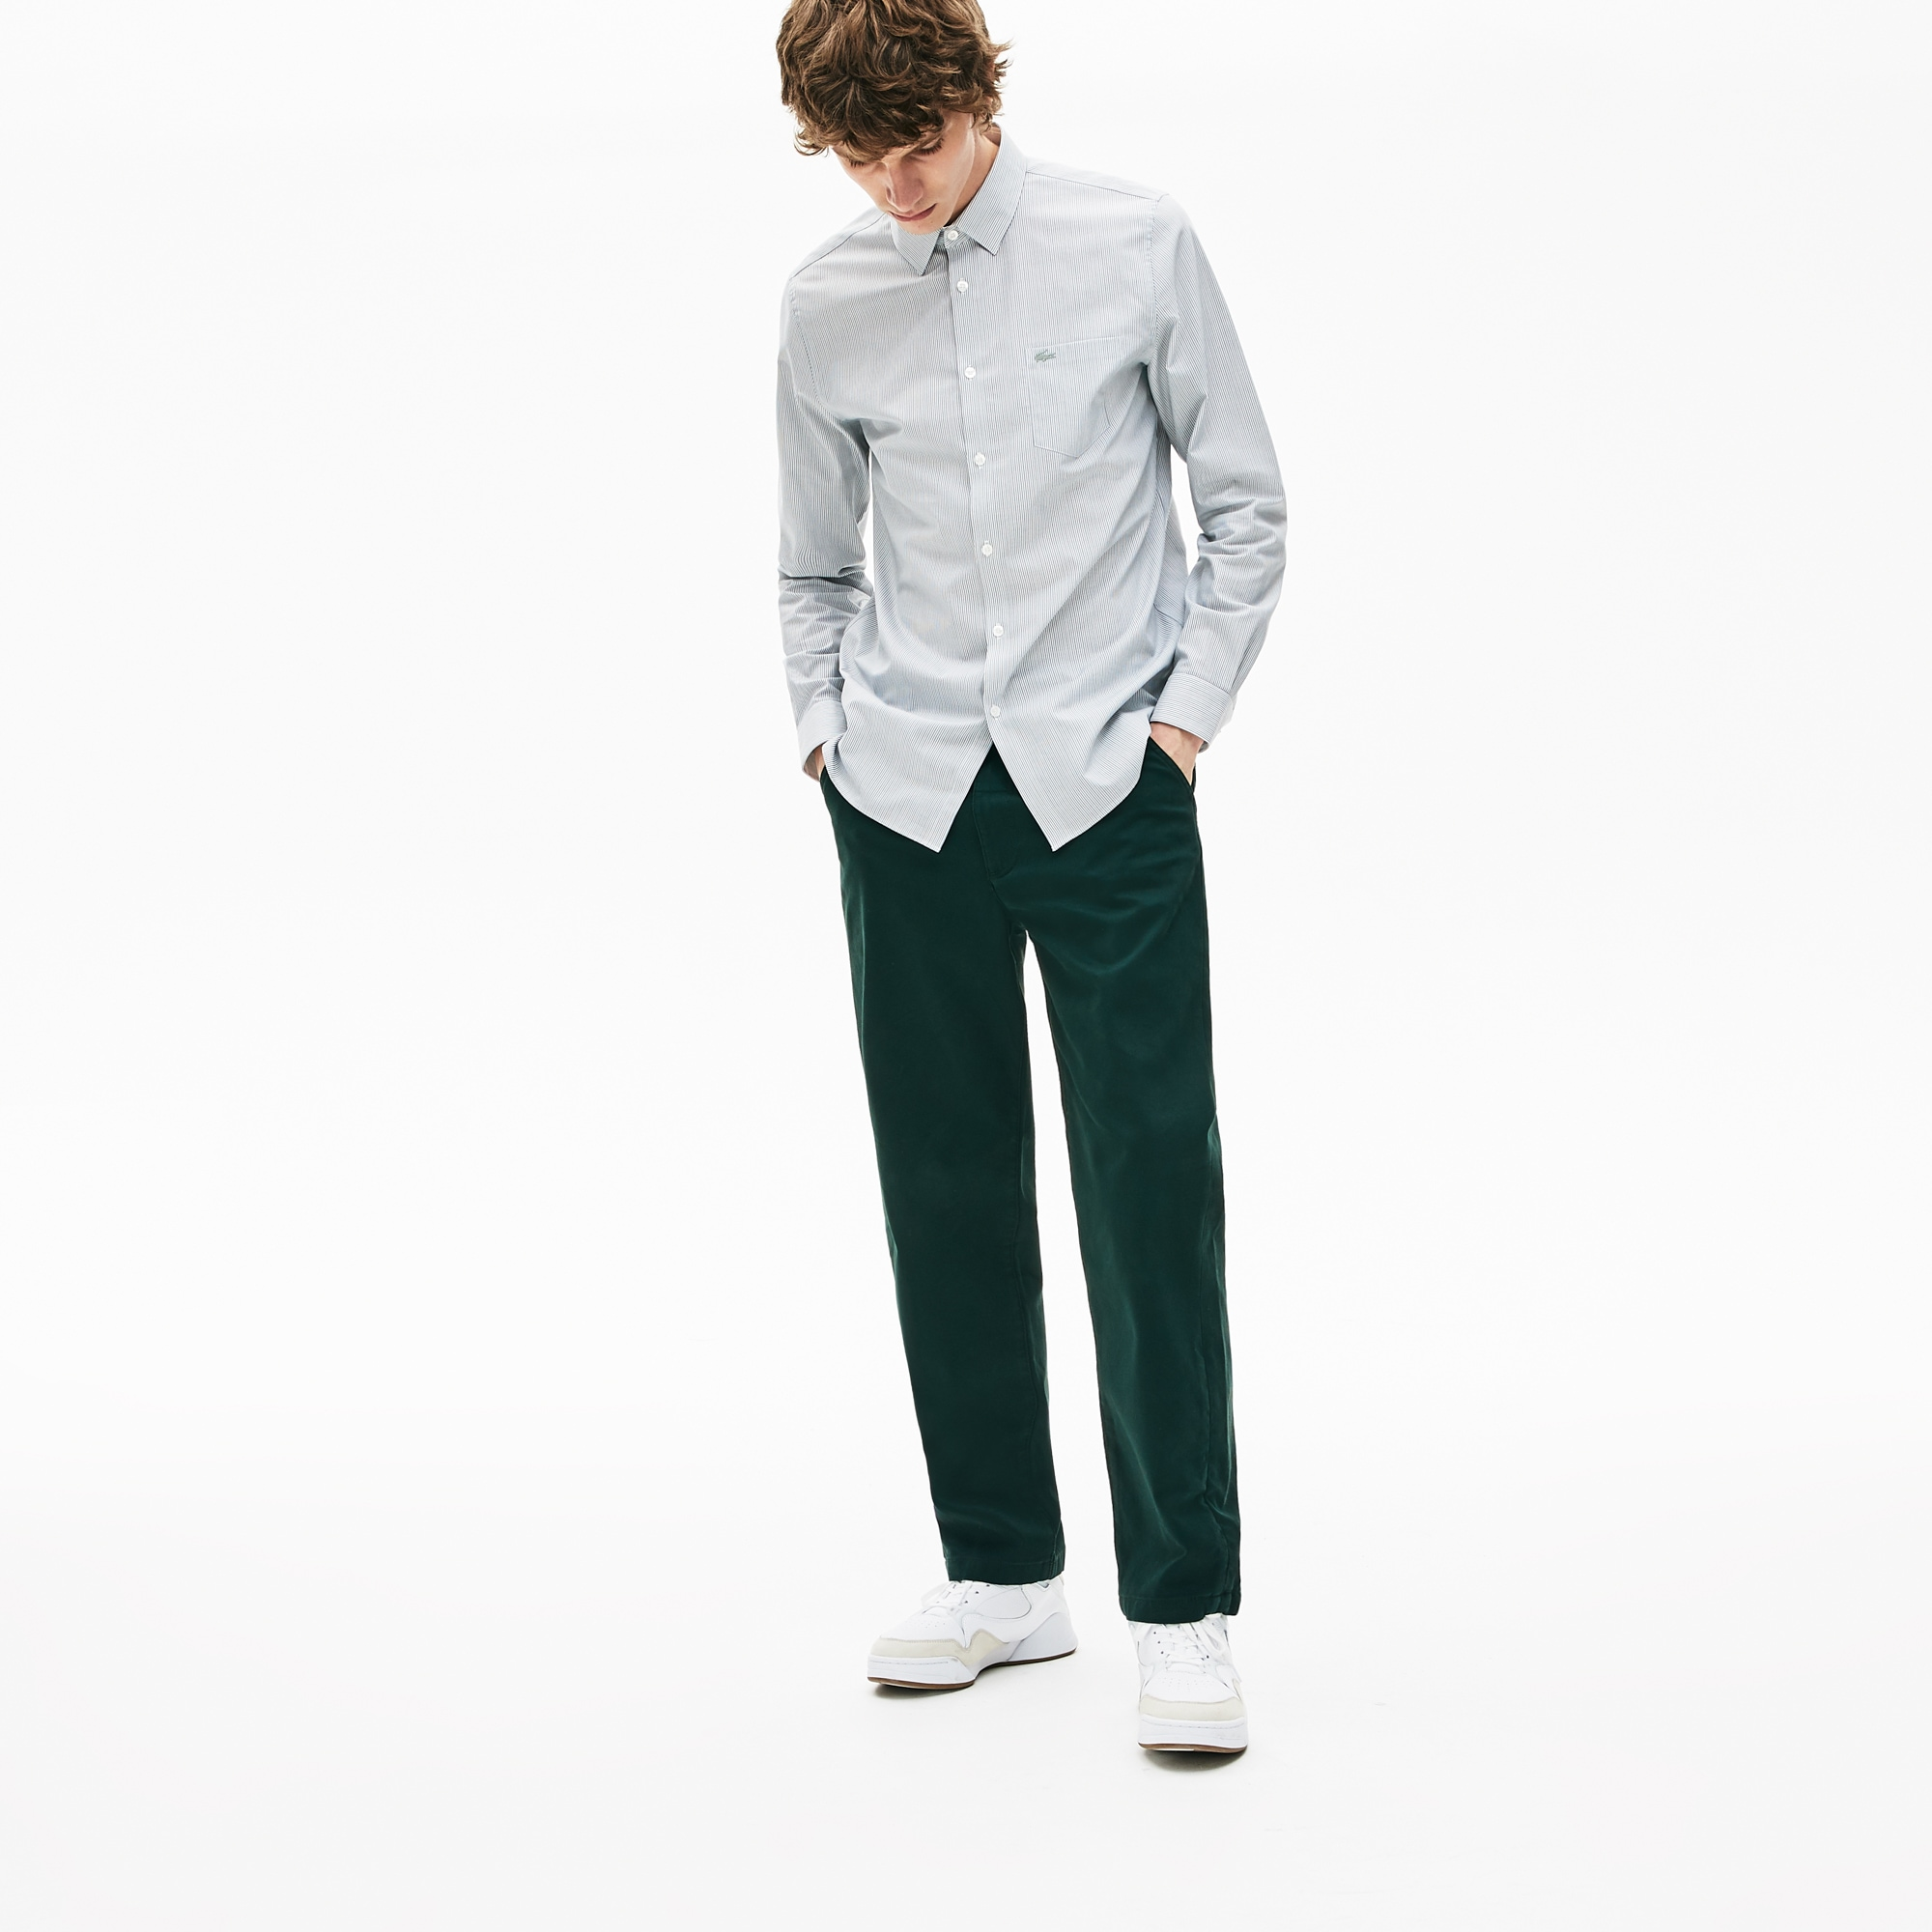 Men's Loose Fit Texturised Stretch Cotton Chino Pants